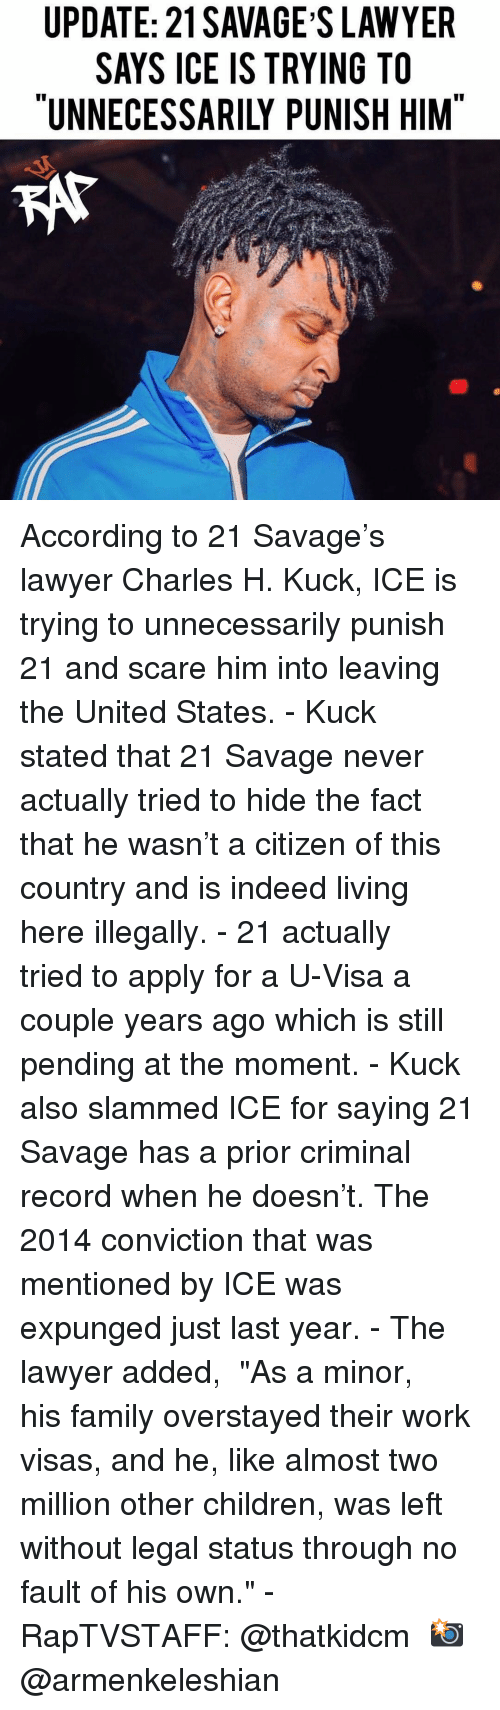 "slammed: UPDATE: 21 SAVAGE S LAWYER  SAYS ICE IS TRYING TO  ""UNNECESSARILY PUNISH HIM According to 21 Savage's lawyer Charles H. Kuck, ICE is trying to unnecessarily punish 21 and scare him into leaving the United States.⁣ -⁣ Kuck stated that 21 Savage never actually tried to hide the fact that he wasn't a citizen of this country and is indeed living here illegally.⁣ -⁣ 21 actually tried to apply for a U-Visa a couple years ago which is still pending at the moment.⁣ -⁣ Kuck also slammed ICE for saying 21 Savage has a prior criminal record when he doesn't. The 2014 conviction that was mentioned by ICE was expunged just last year.⁣ -⁣ The lawyer added,⁣ ⁣ ""As a minor, his family overstayed their work visas, and he, like almost two million other children, was left without legal status through no fault of his own.""⁣ -⁣ RapTVSTAFF: @thatkidcm⁣ 📸 @armenkeleshian⁣"